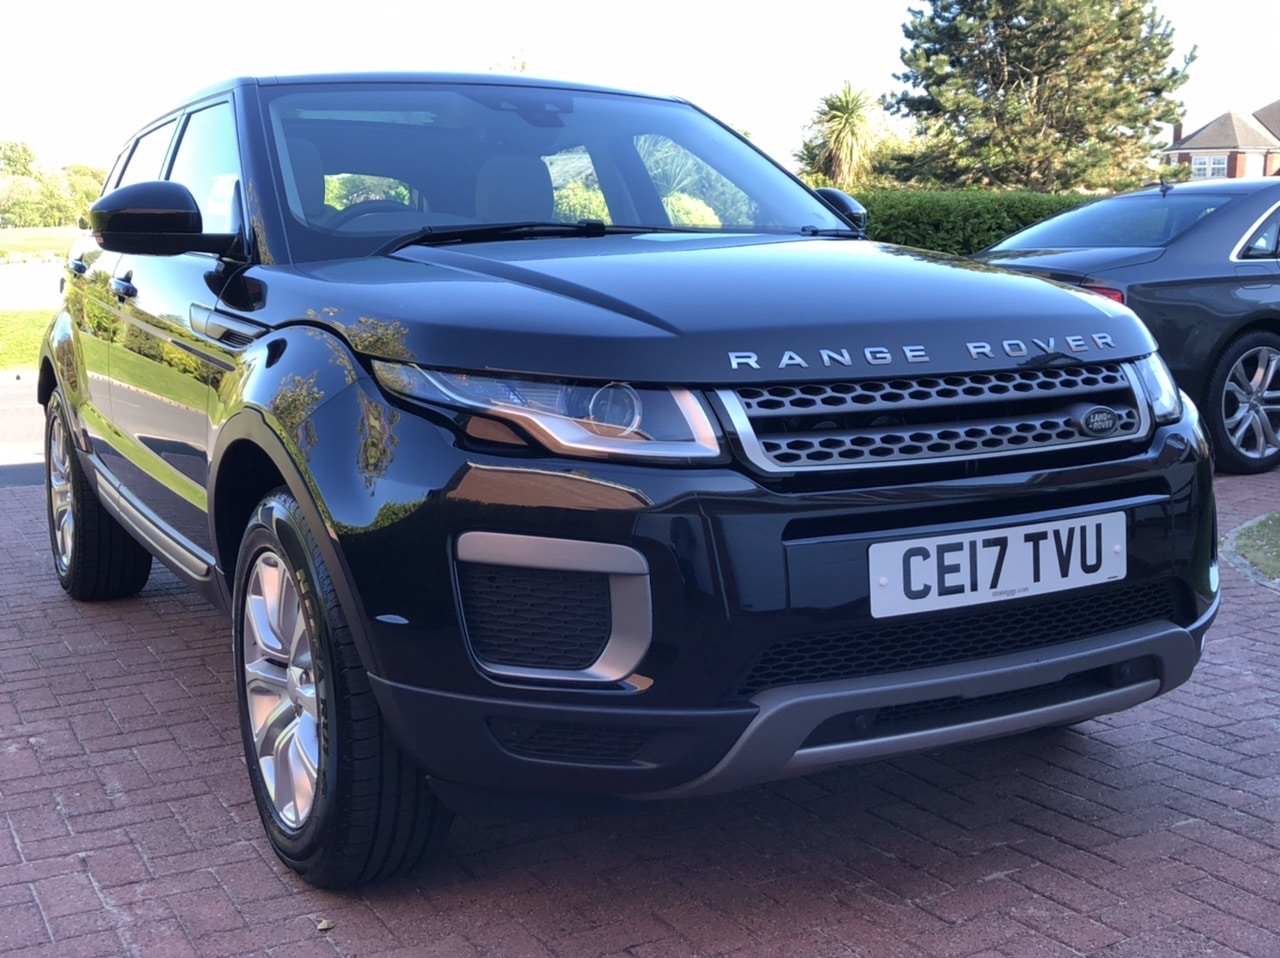 2017 17 LAND ROVER RANGE ROVER EVOQUE 2.0 ED4 150BHP SE 5 DOOR MANUAL